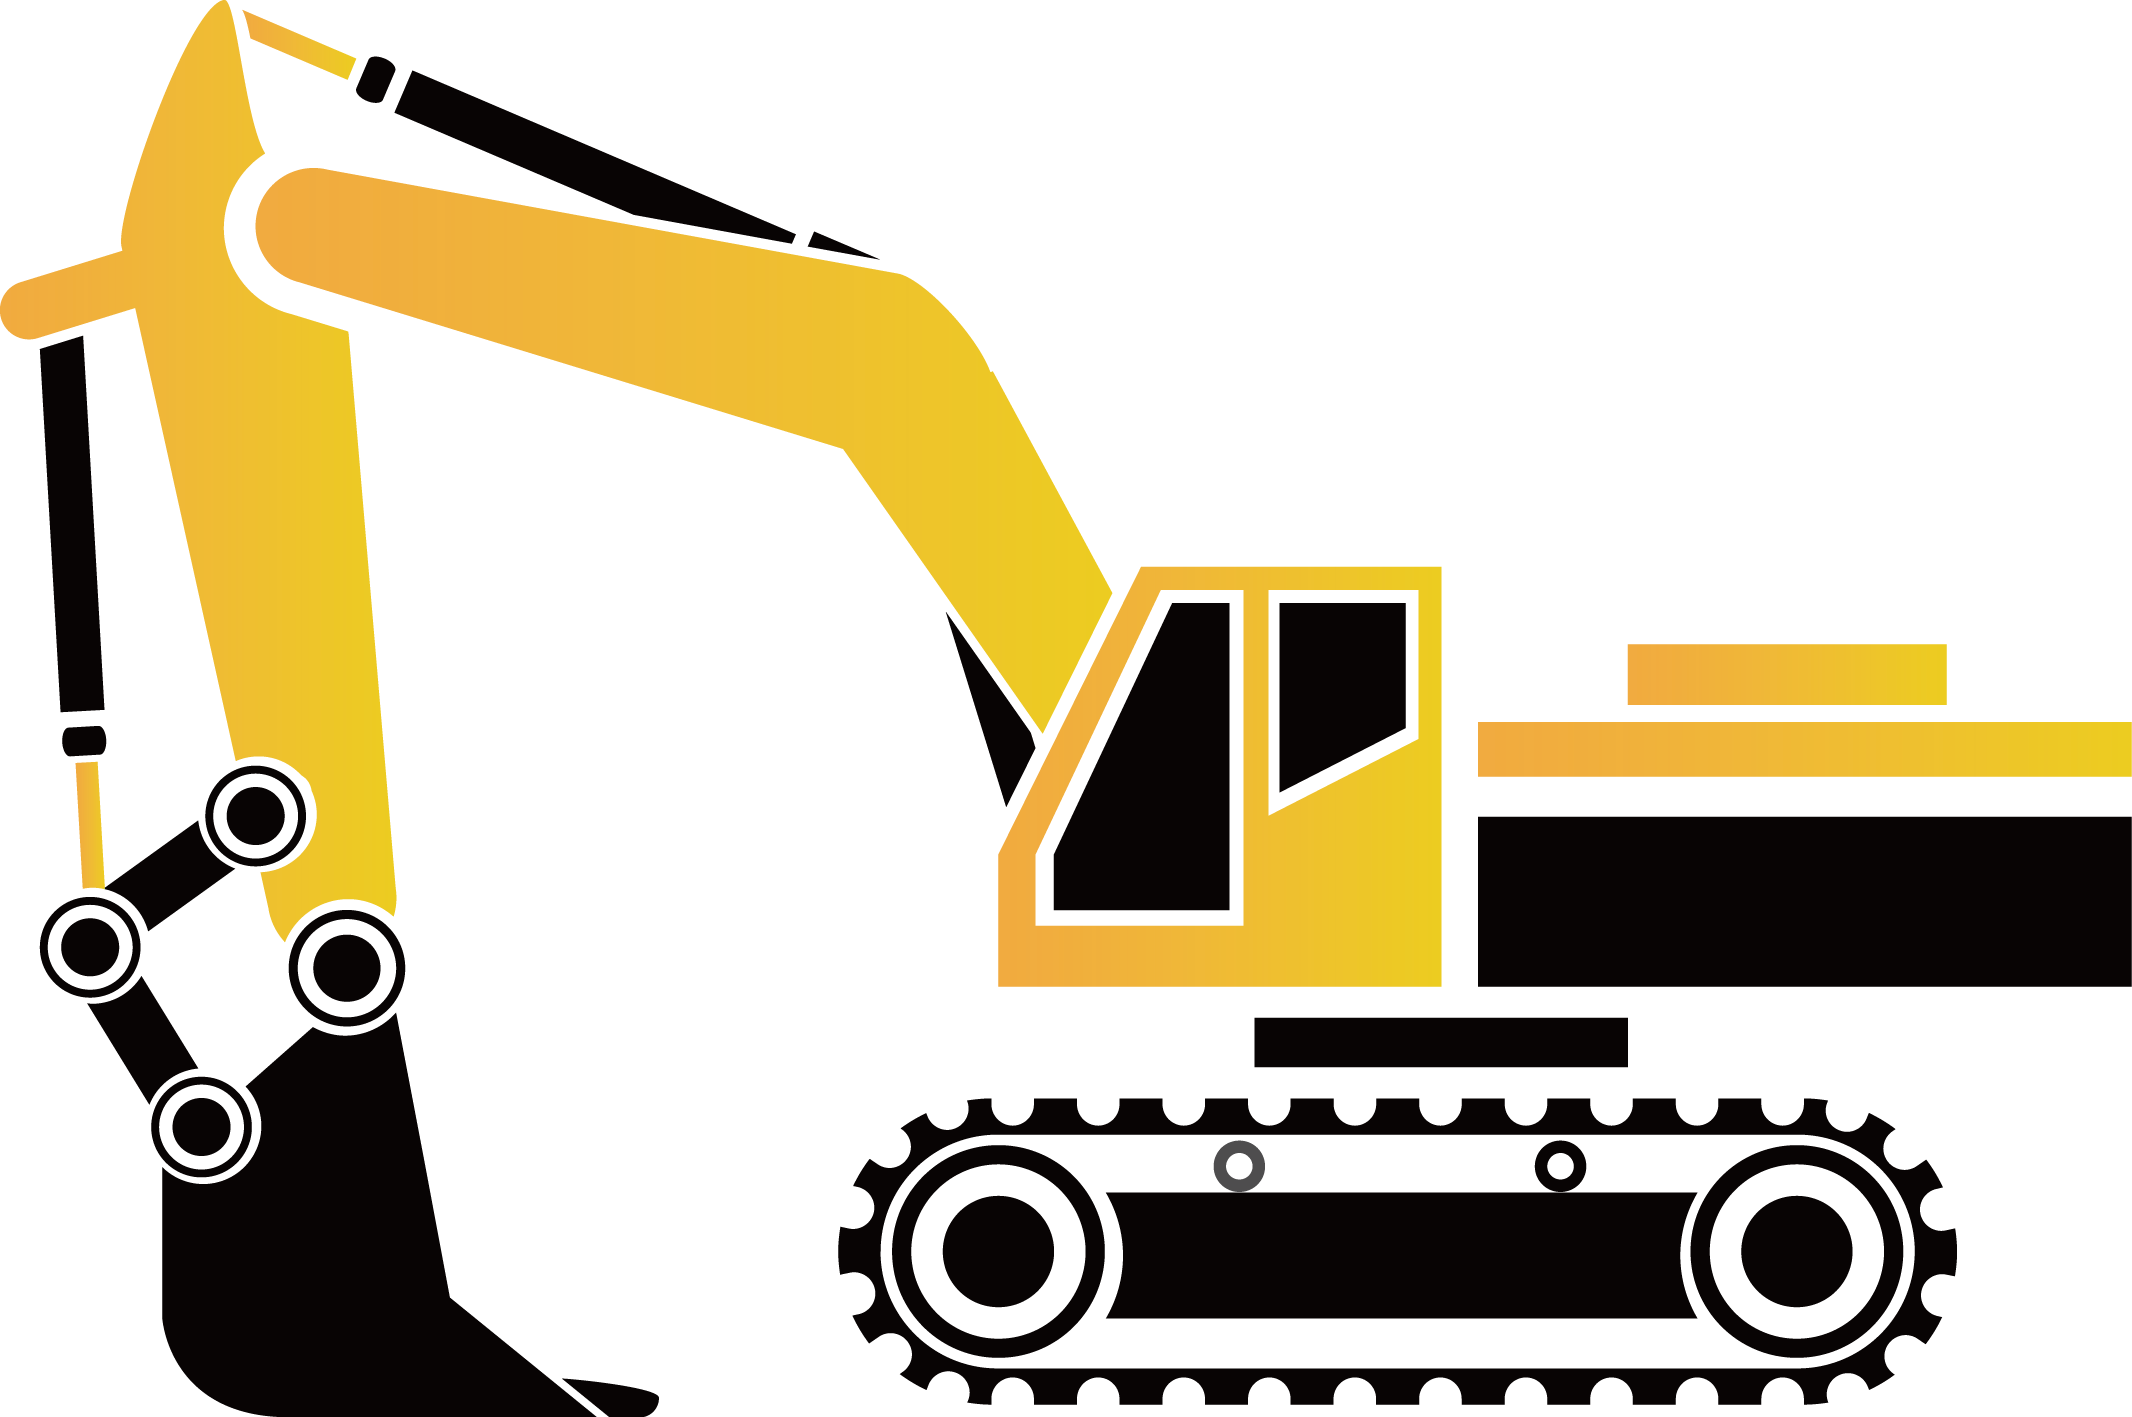 Engineering clipart engineering wheel. Excavator architectural earthworks icon